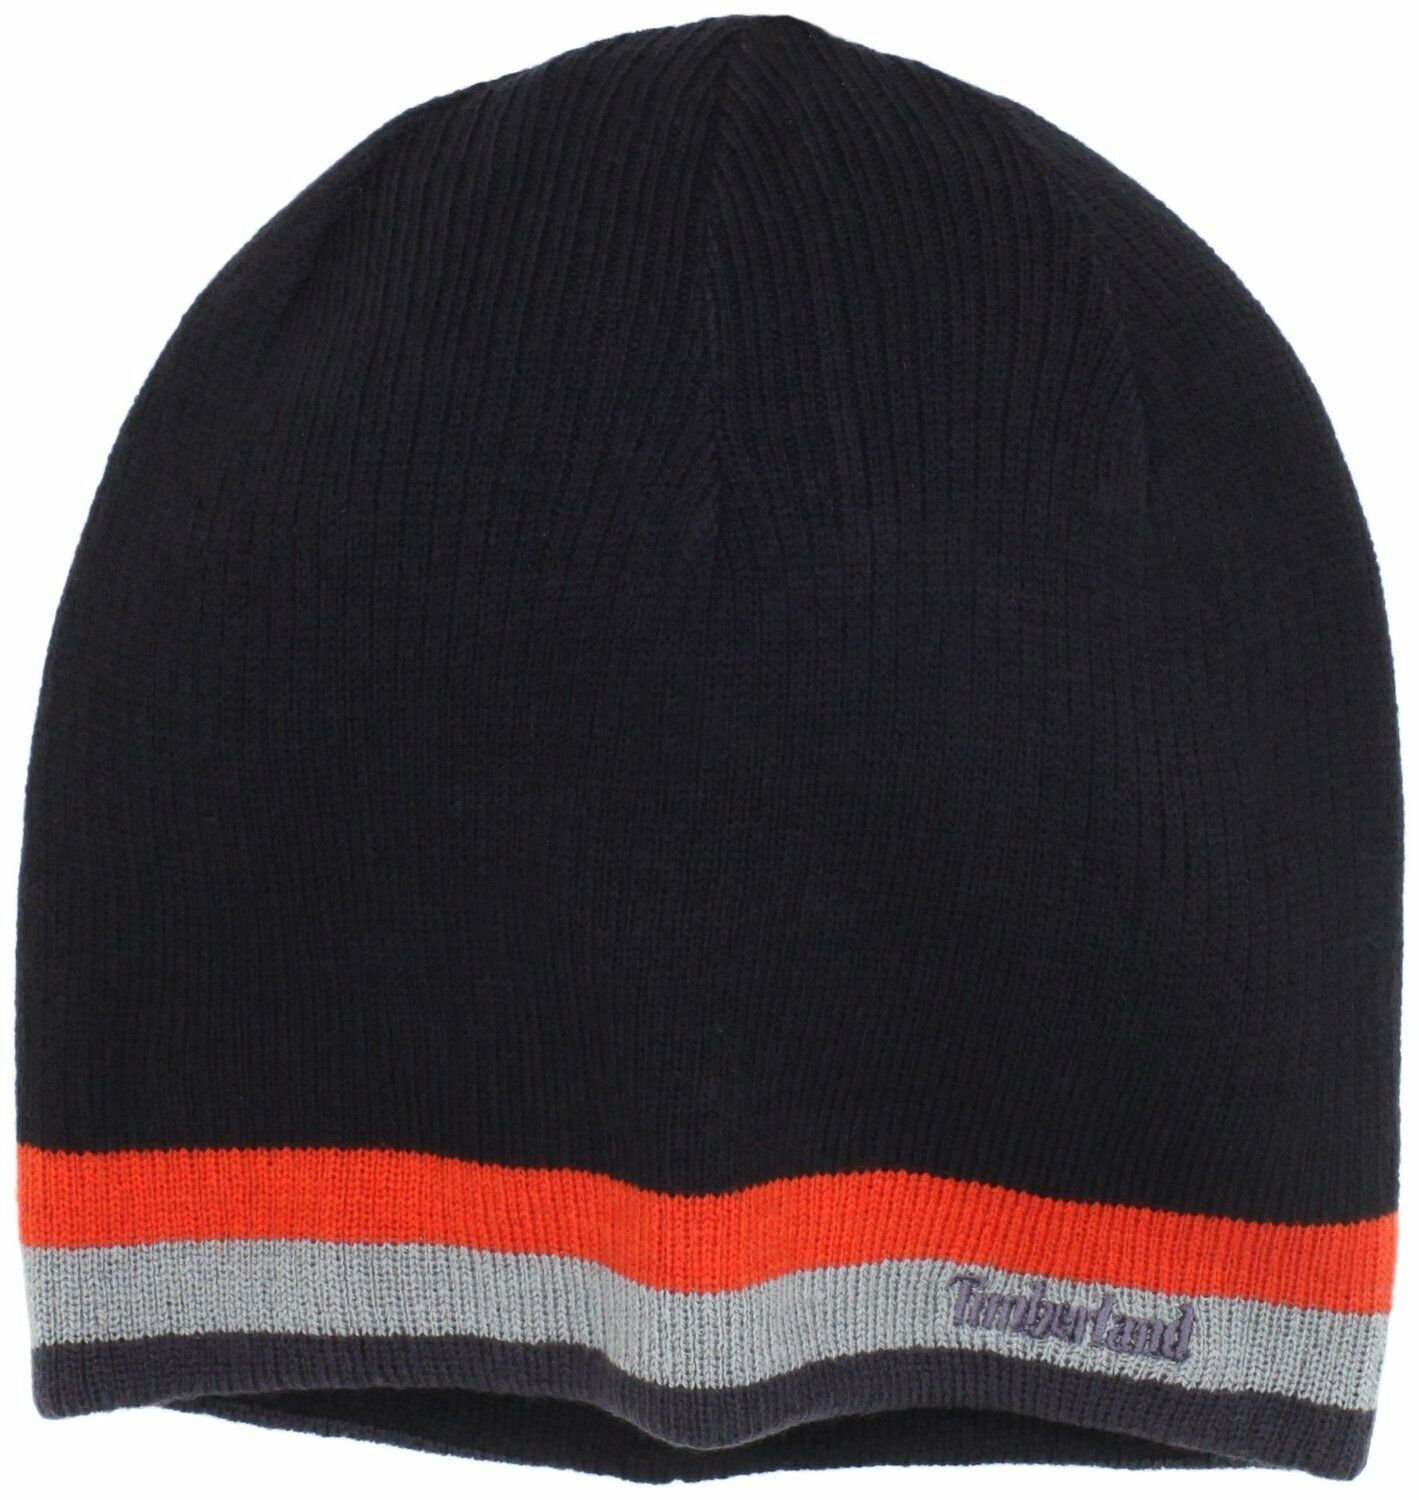 Black Timberland beanie with orange and gray stripes at the bottom